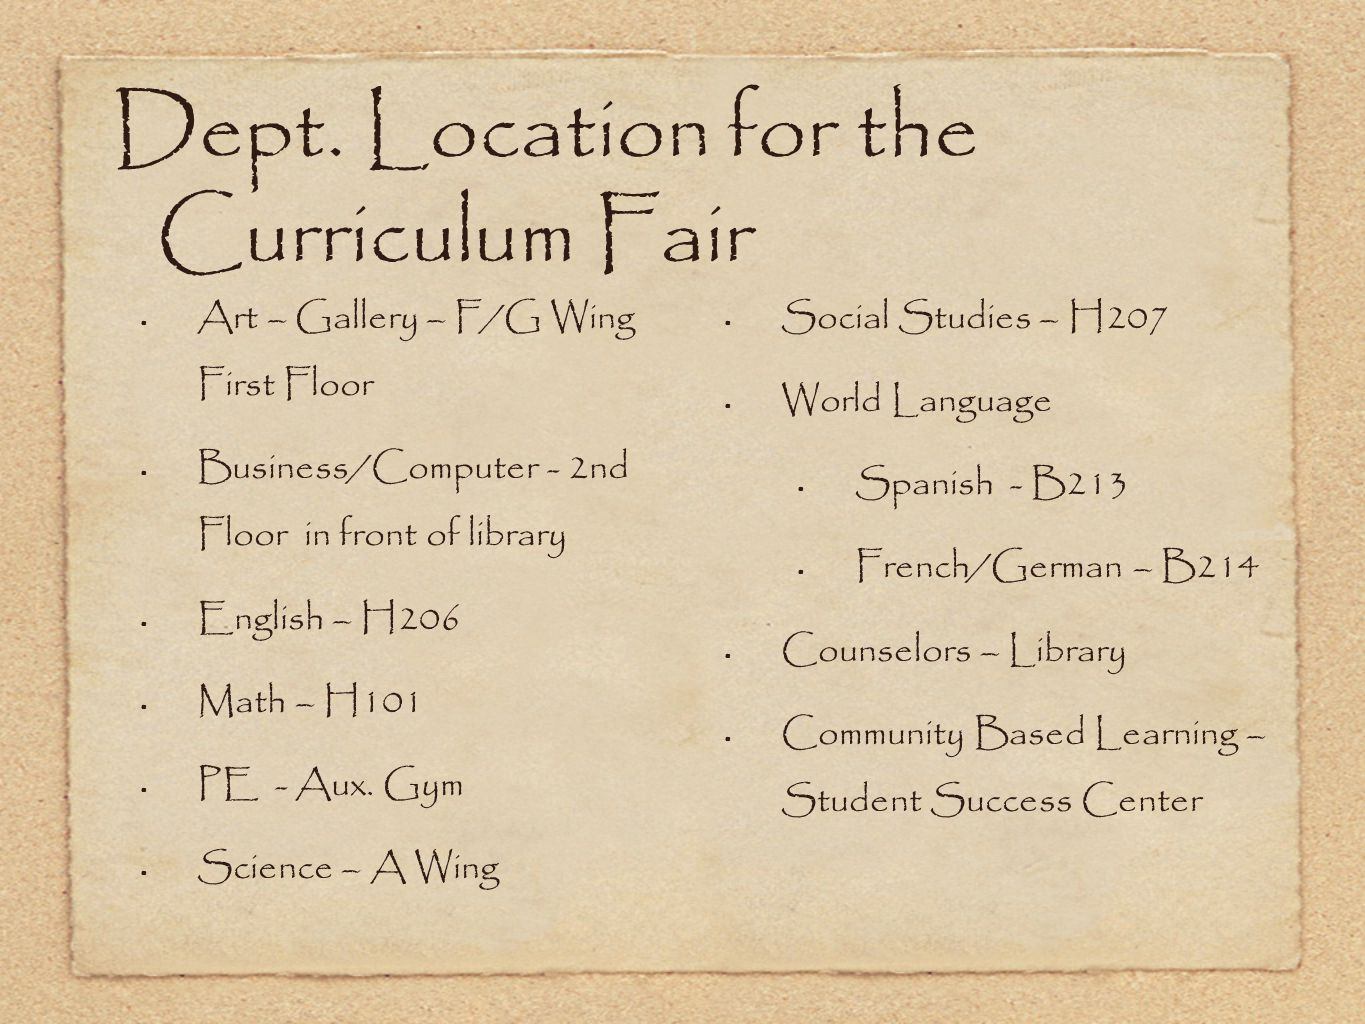 Dept. Location for the Curriculum Fair